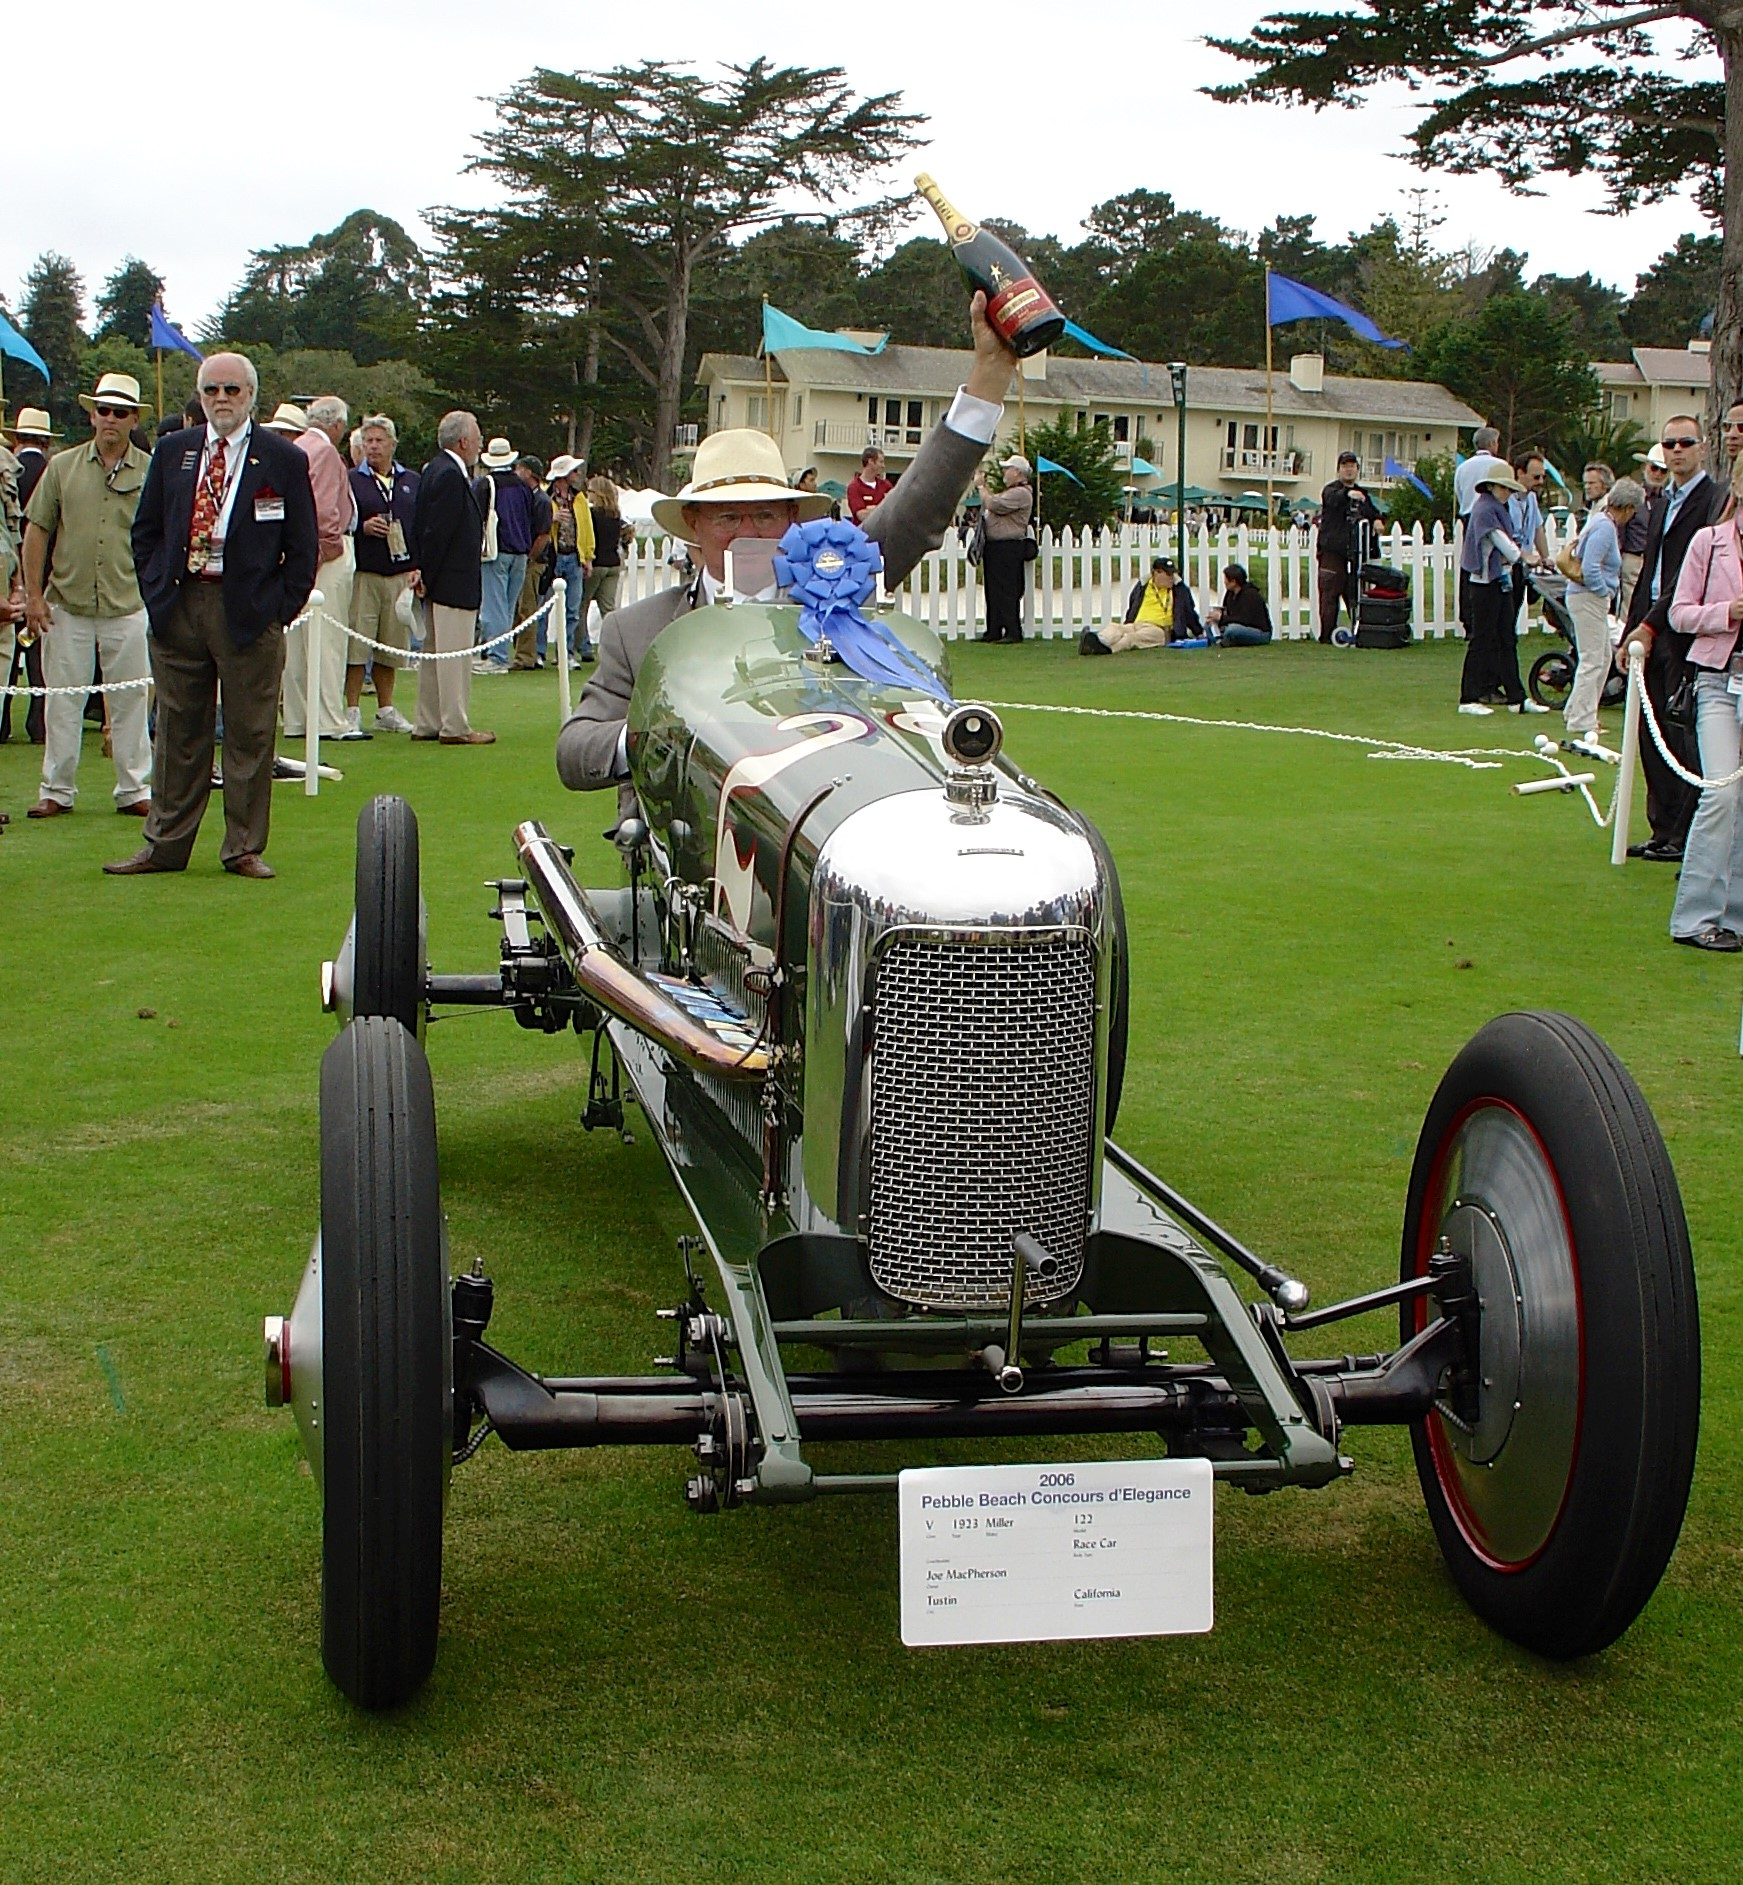 This 1925 Miller 122 Supercharged race car, featuring Banker Wire mesh, was entered into the 2006 Pebble Beach Concours d'Elegance event and won first place in Class V, Open Wheel Race Cars.